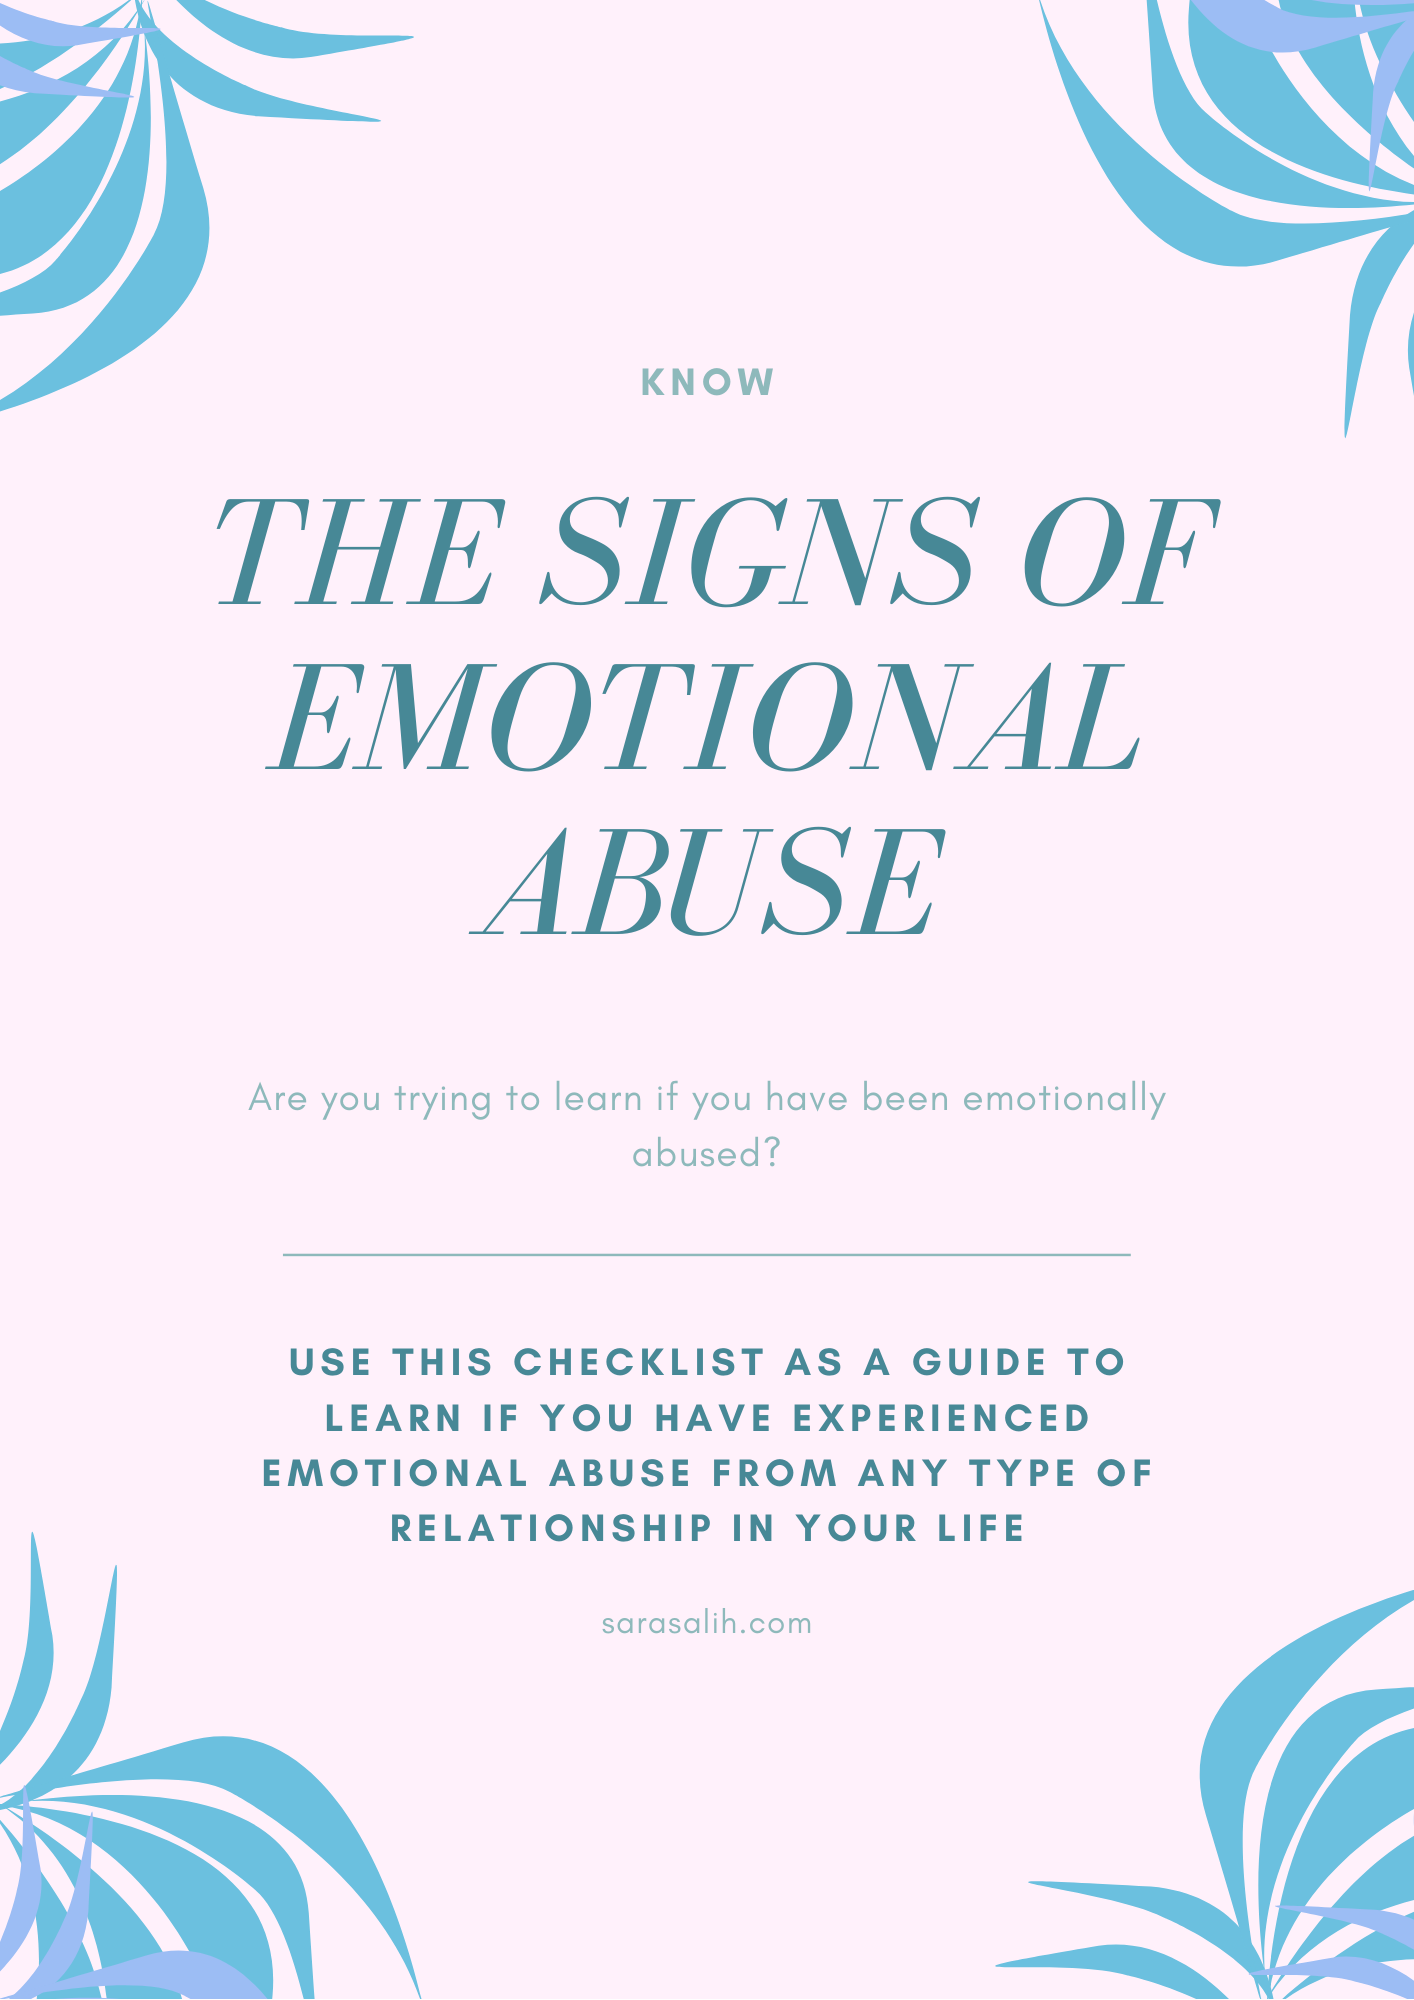 The Signs of emotional abuse